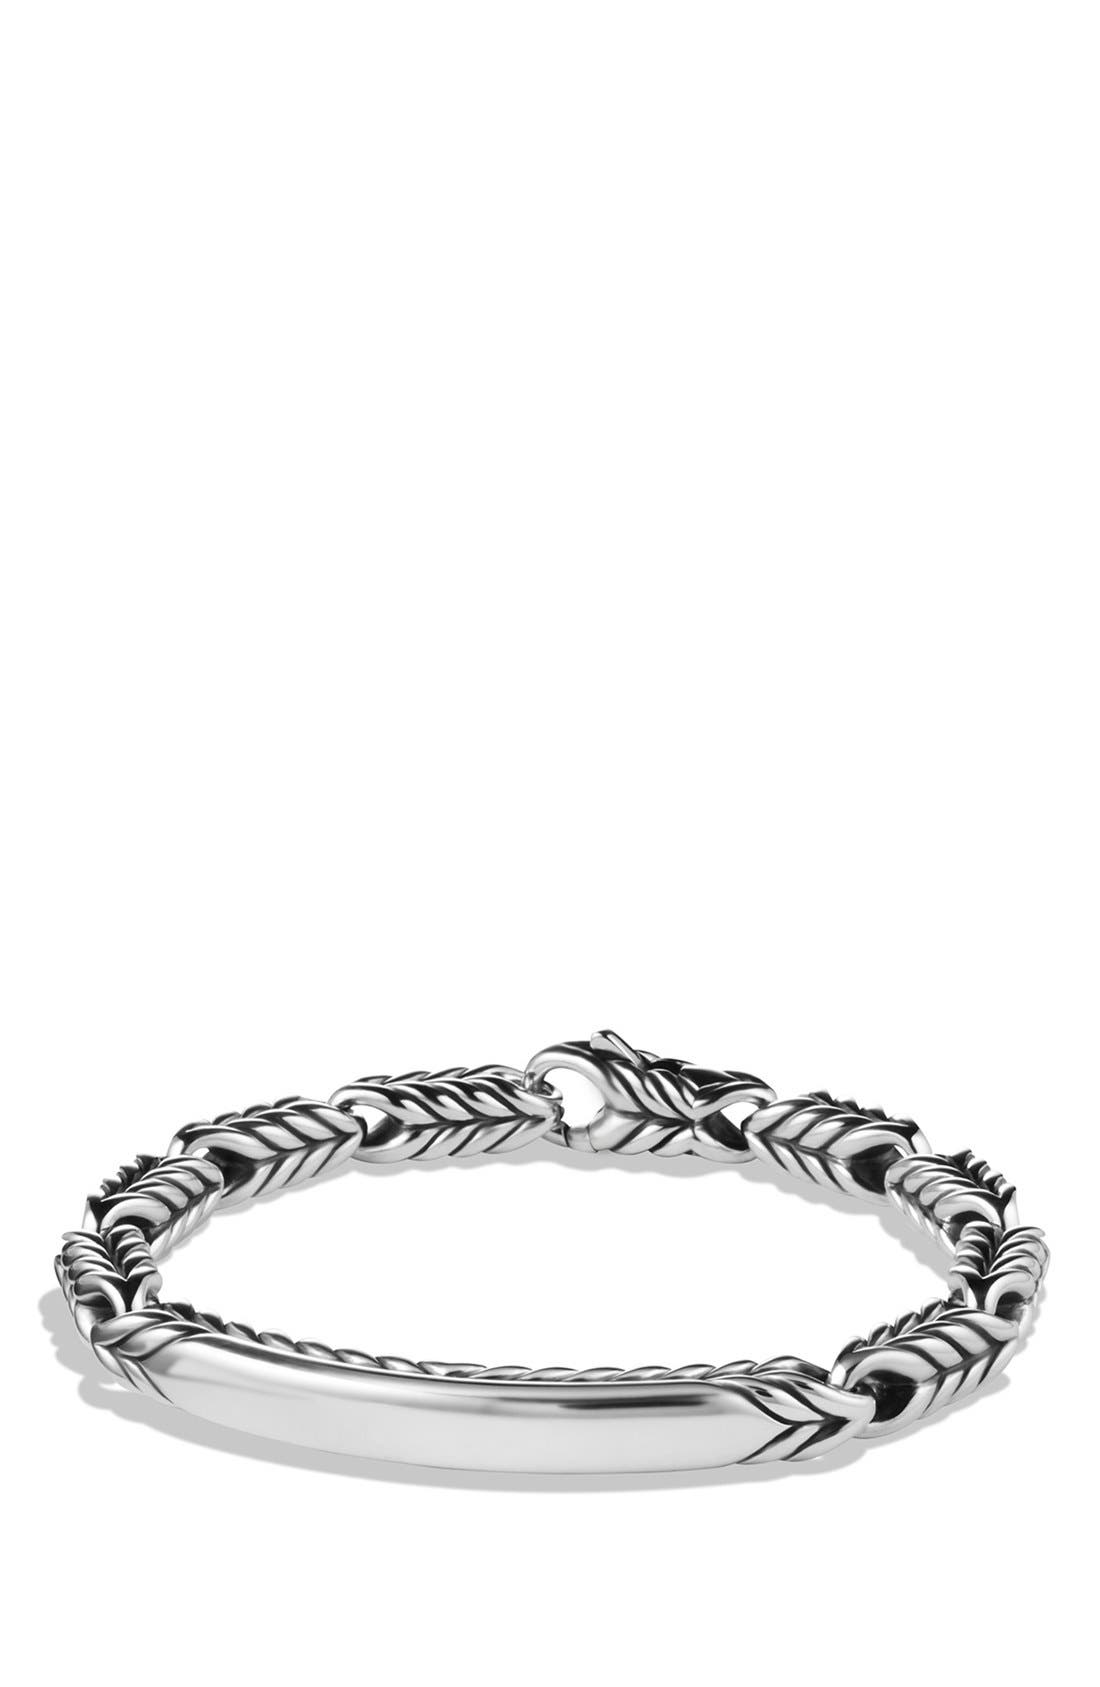 'Chevron' ID Bracelet,                         Main,                         color, Silver